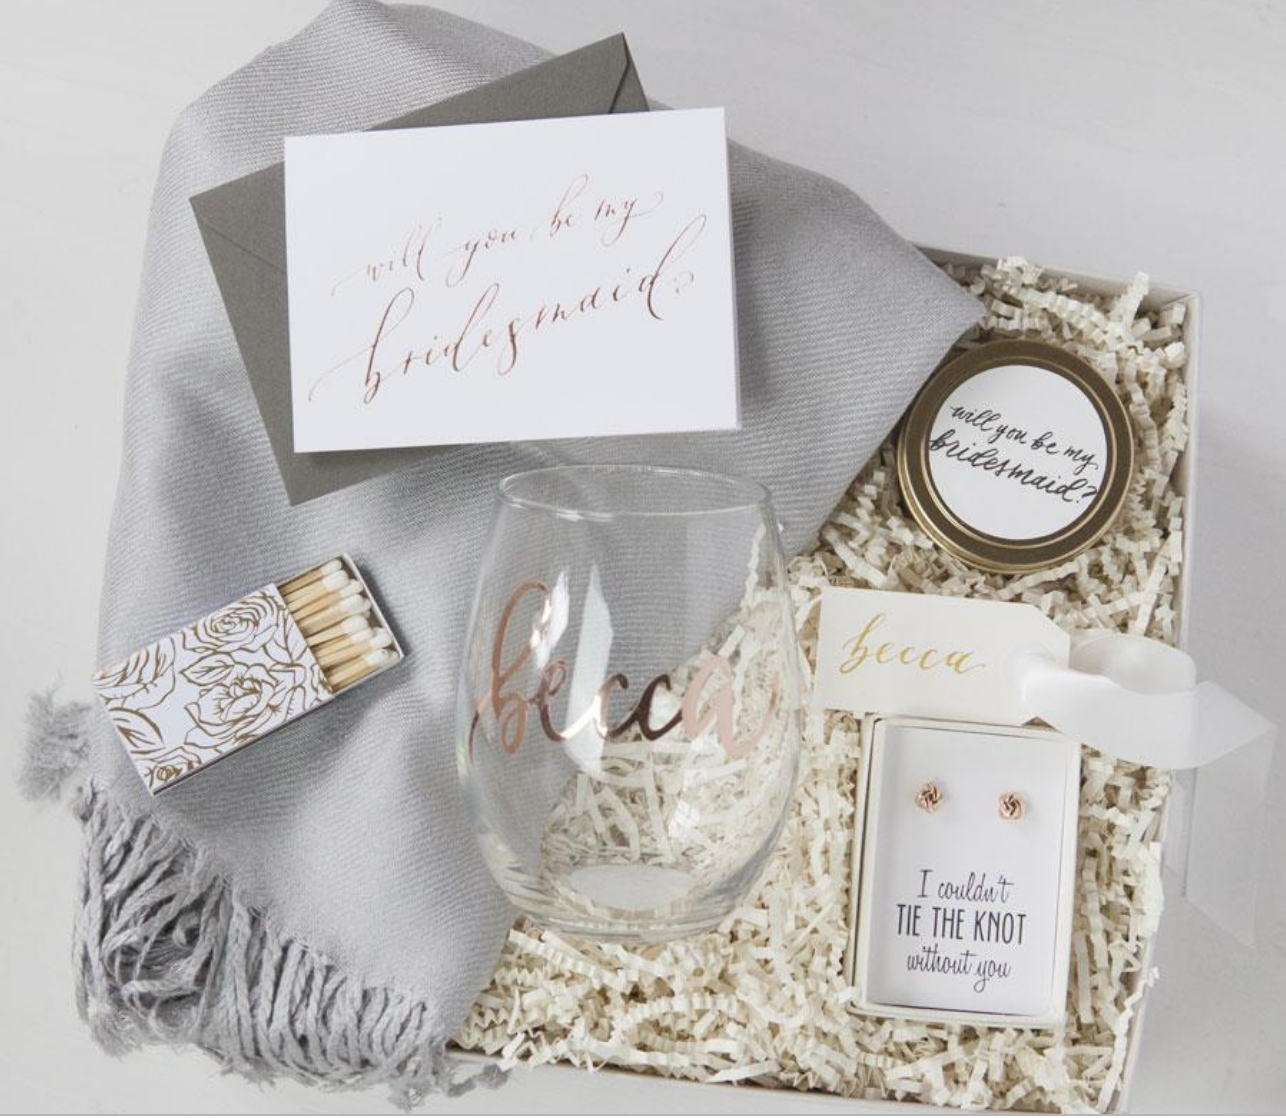 Bridesmaids Proposal Gift Box.png